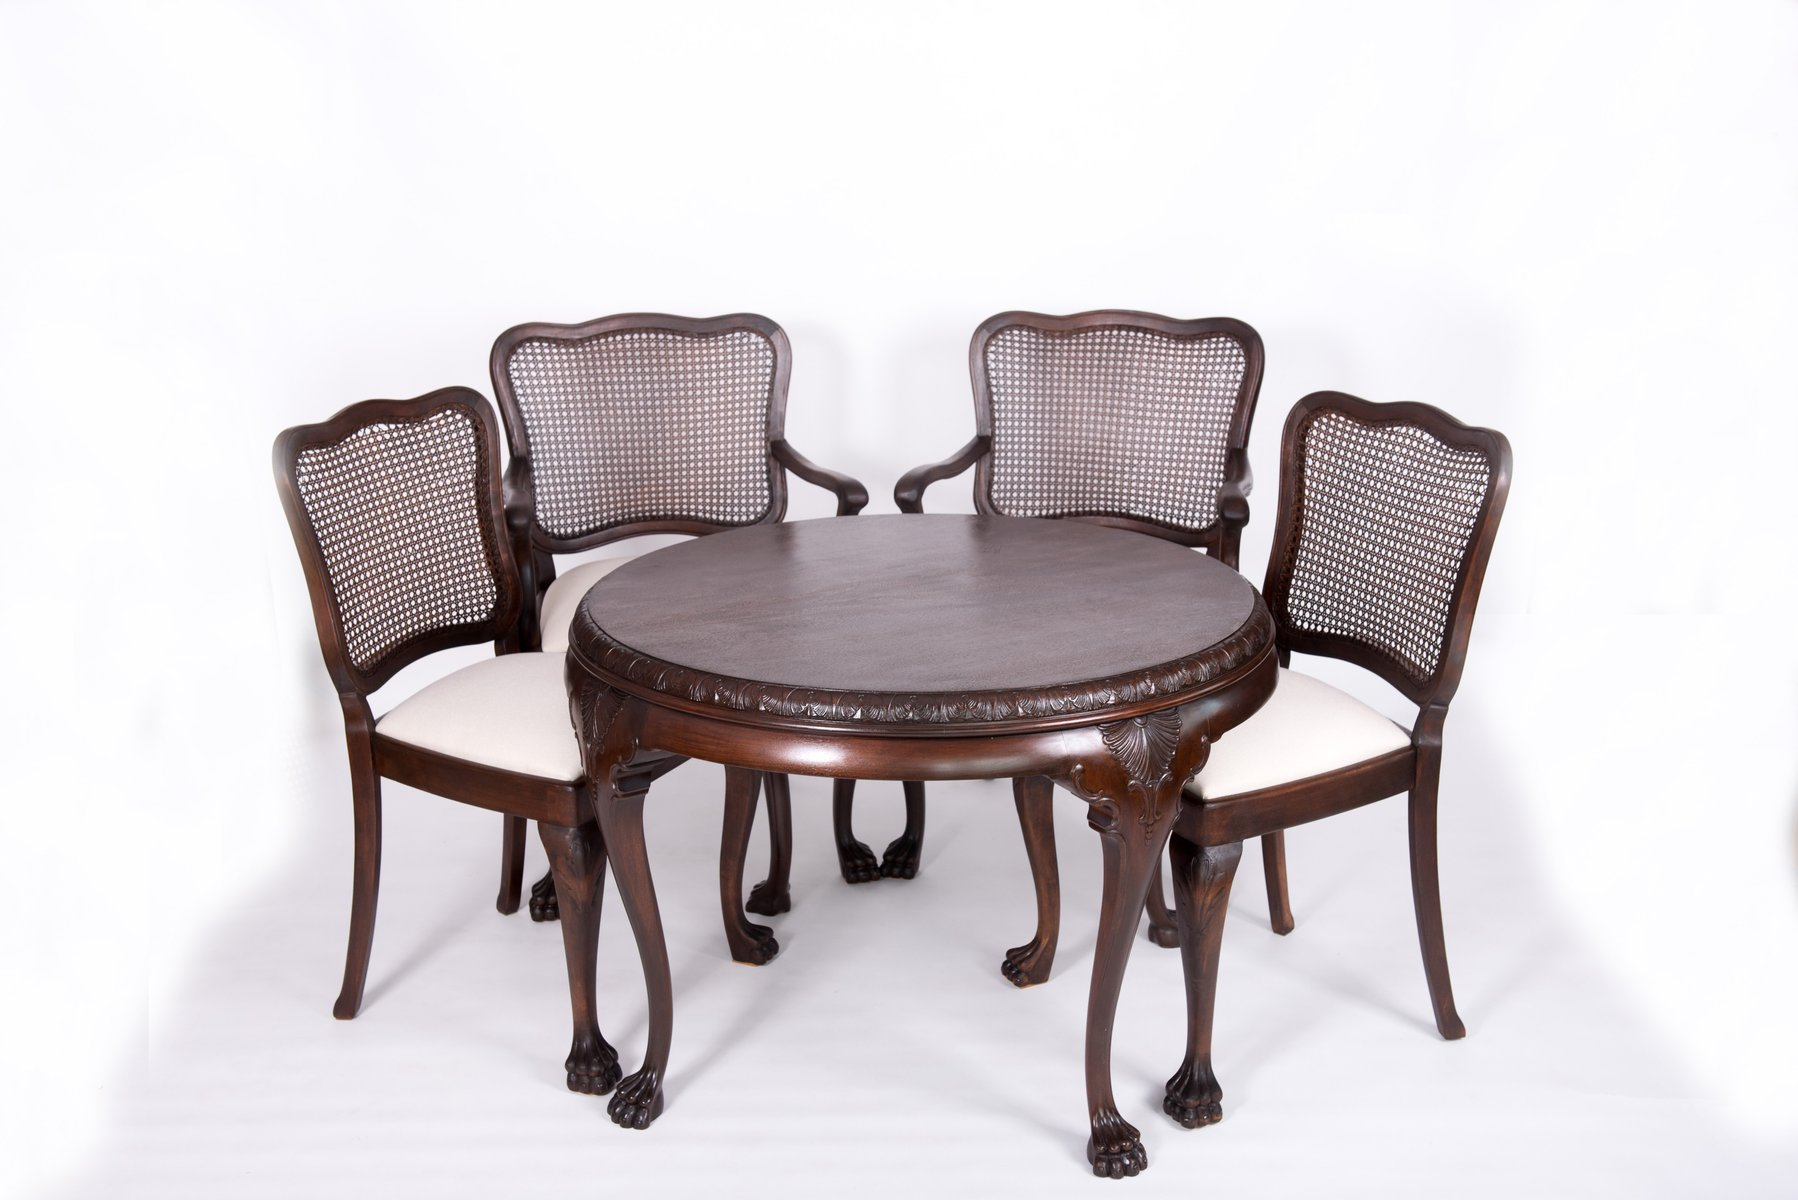 Antique Chippendale Style Table Chairs For Sale At Pamono - Coffee table with 4 chairs